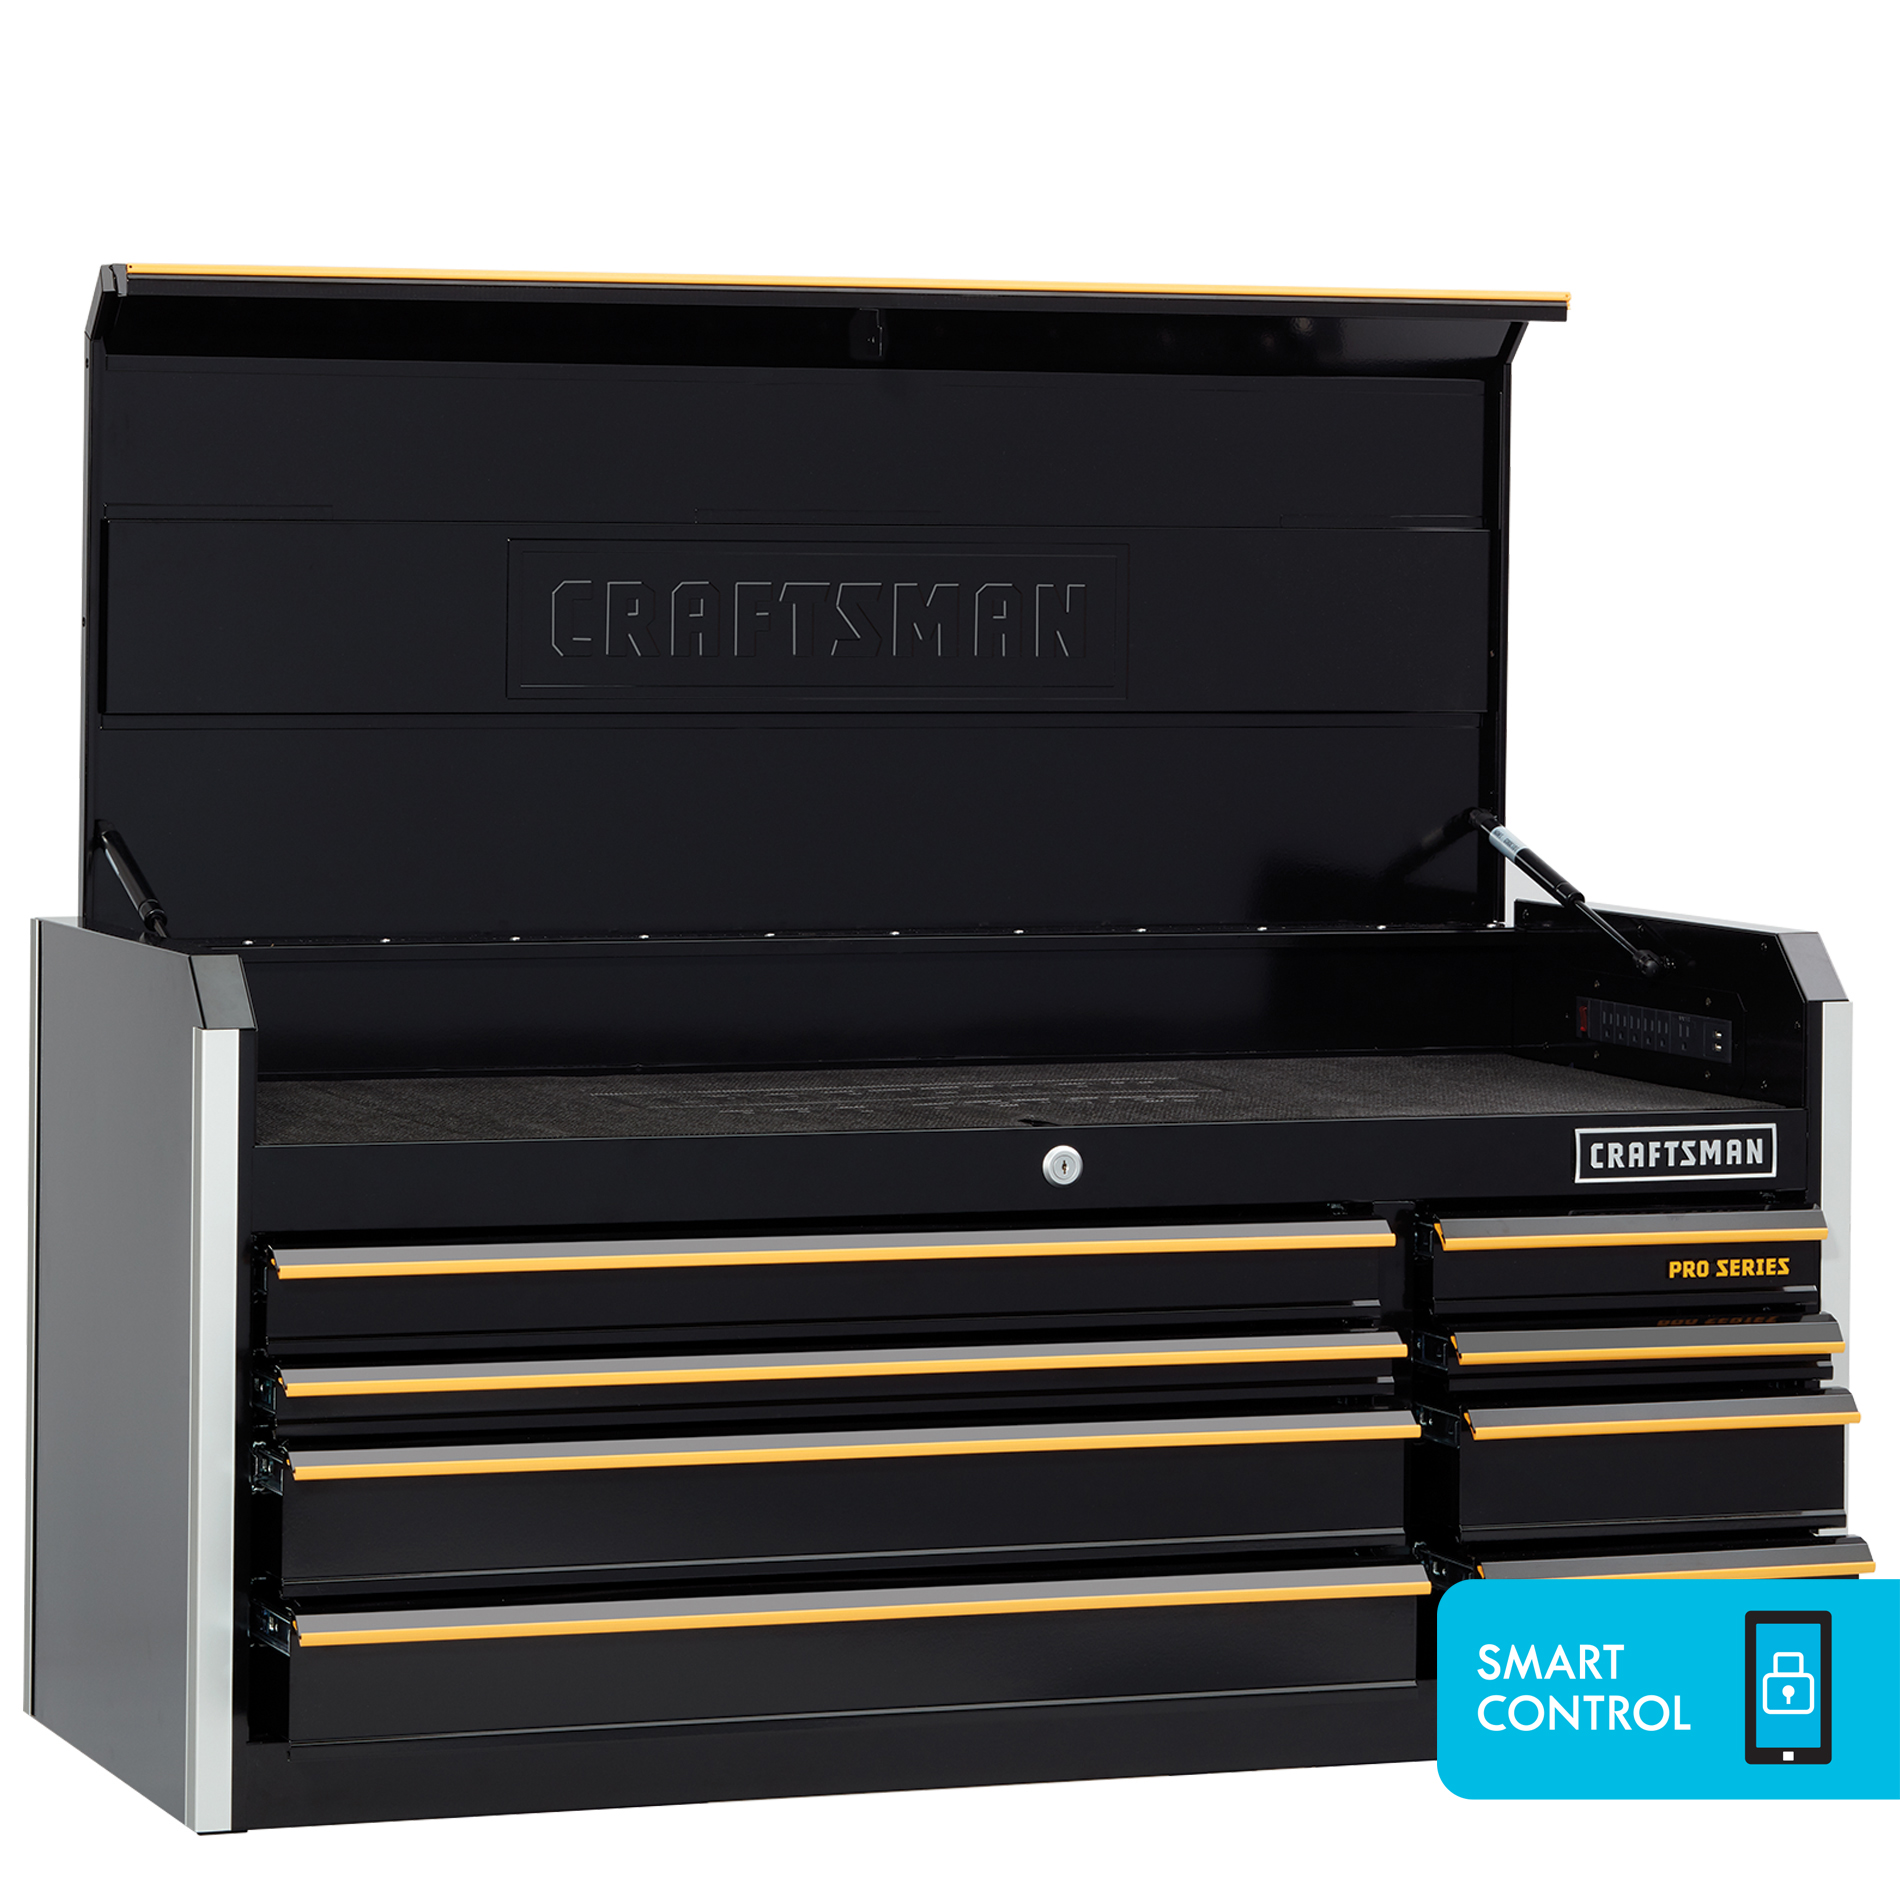 "Craftsman ProSeries 52"""" 8-Drawer Top Chest - Black"